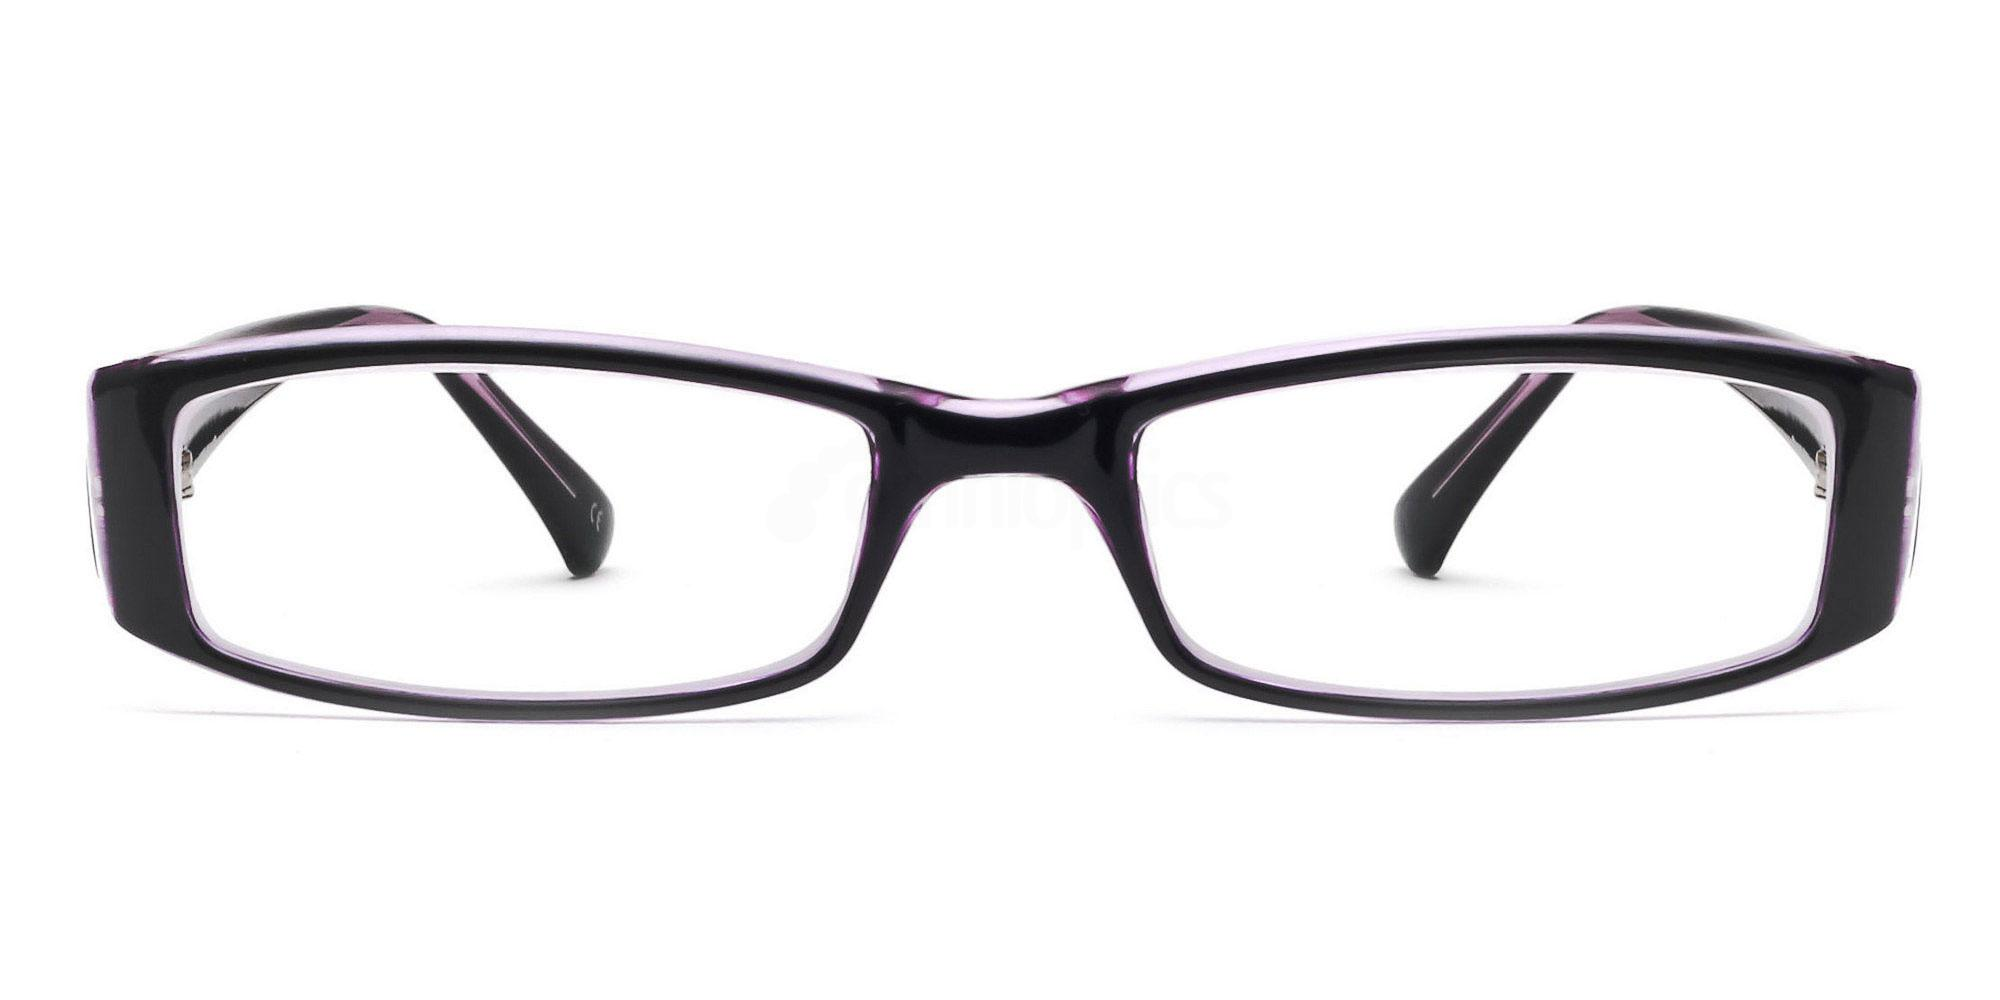 C44 P2251 - Black and Purple , Savannah